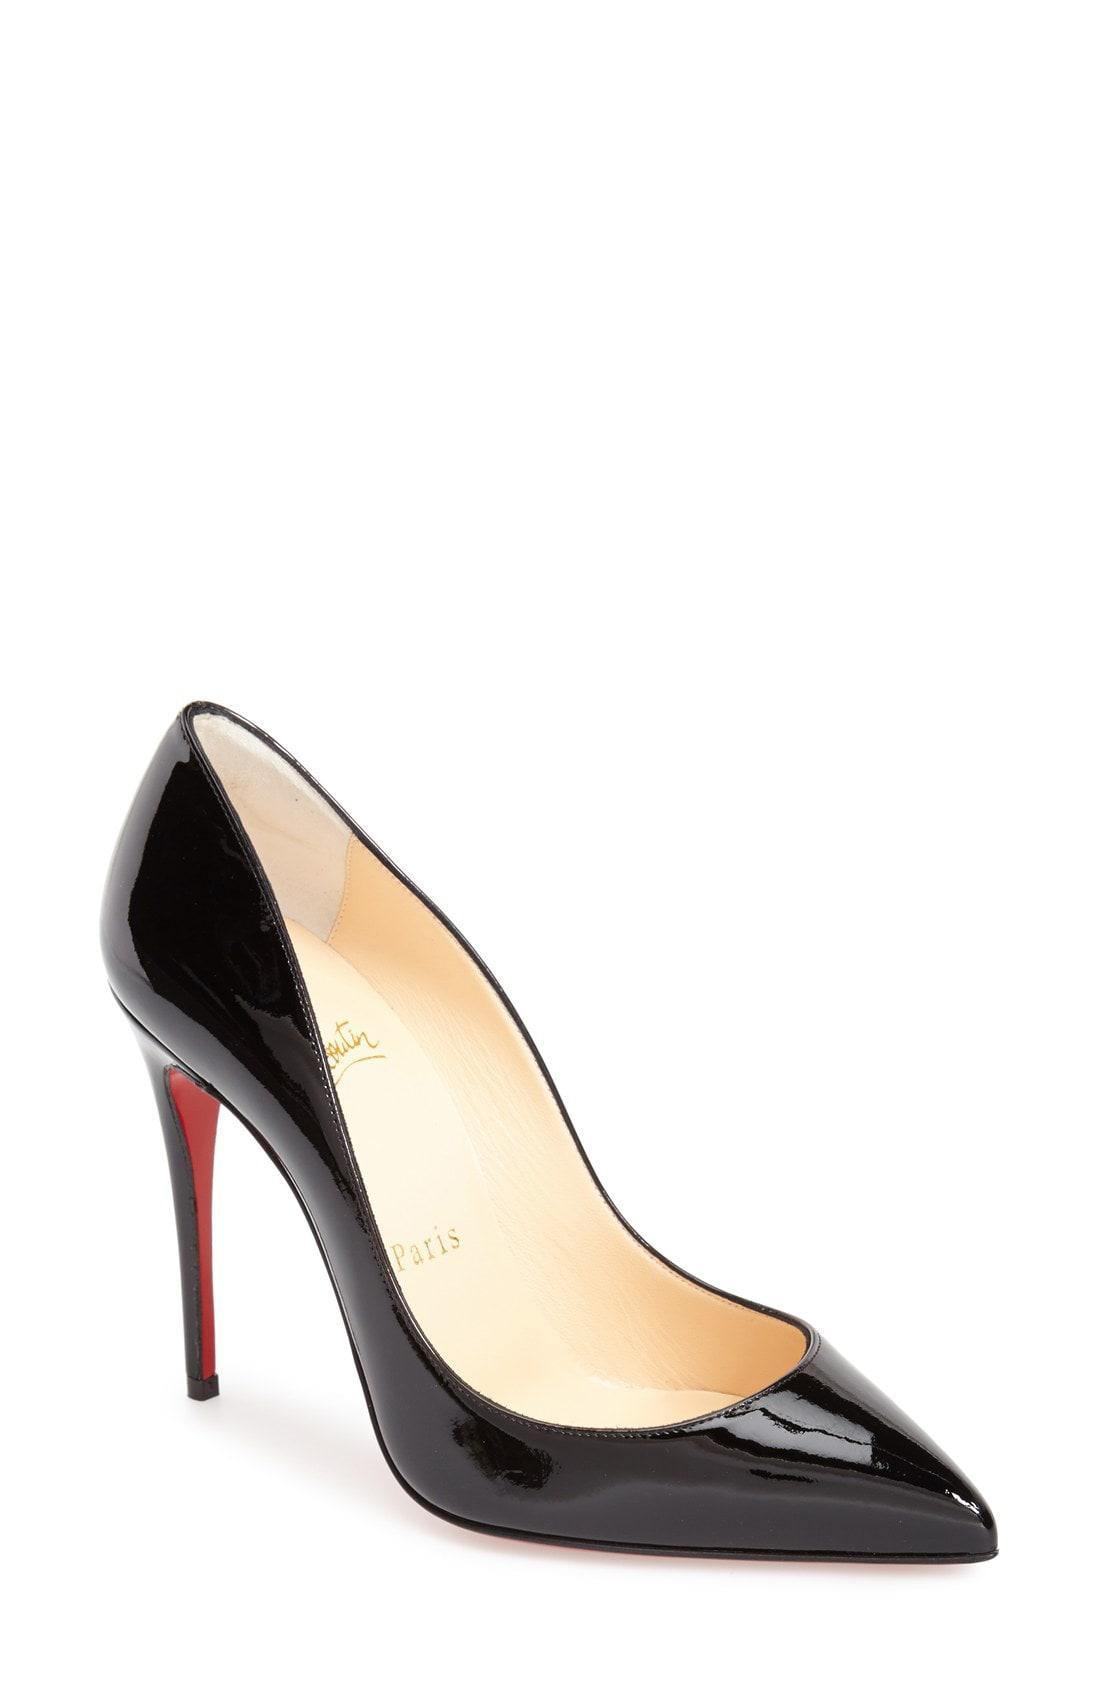 ac3fe850d7c6 Lyst - Christian Louboutin Pigalle Follies Pointy Toe Pump in Black ...